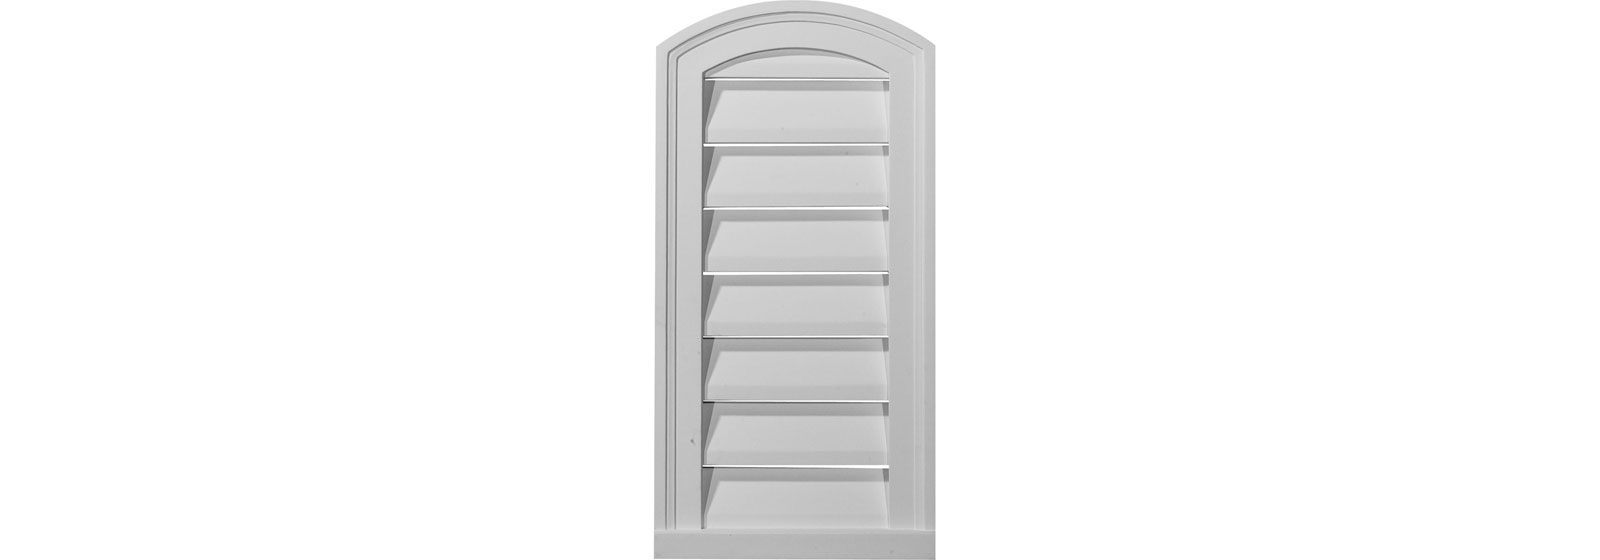 Functional Gable Vent